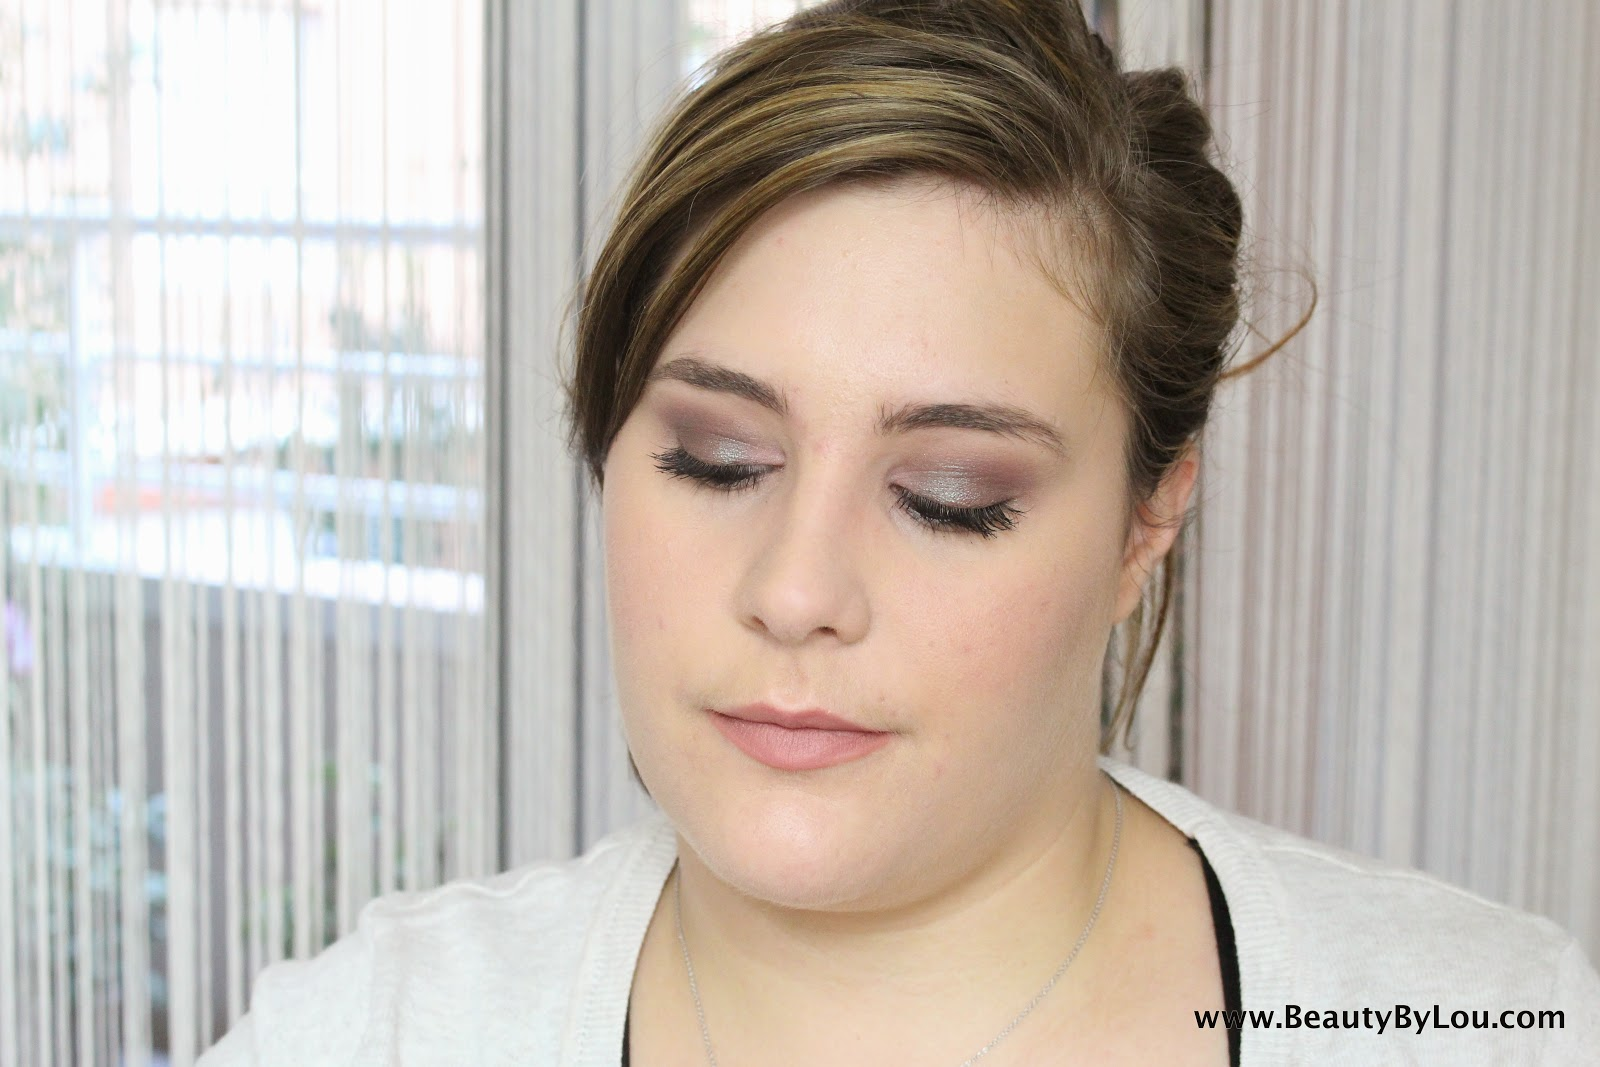 http://www.beautybylou.com/2014/11/yeux-mordores-club-mac.html